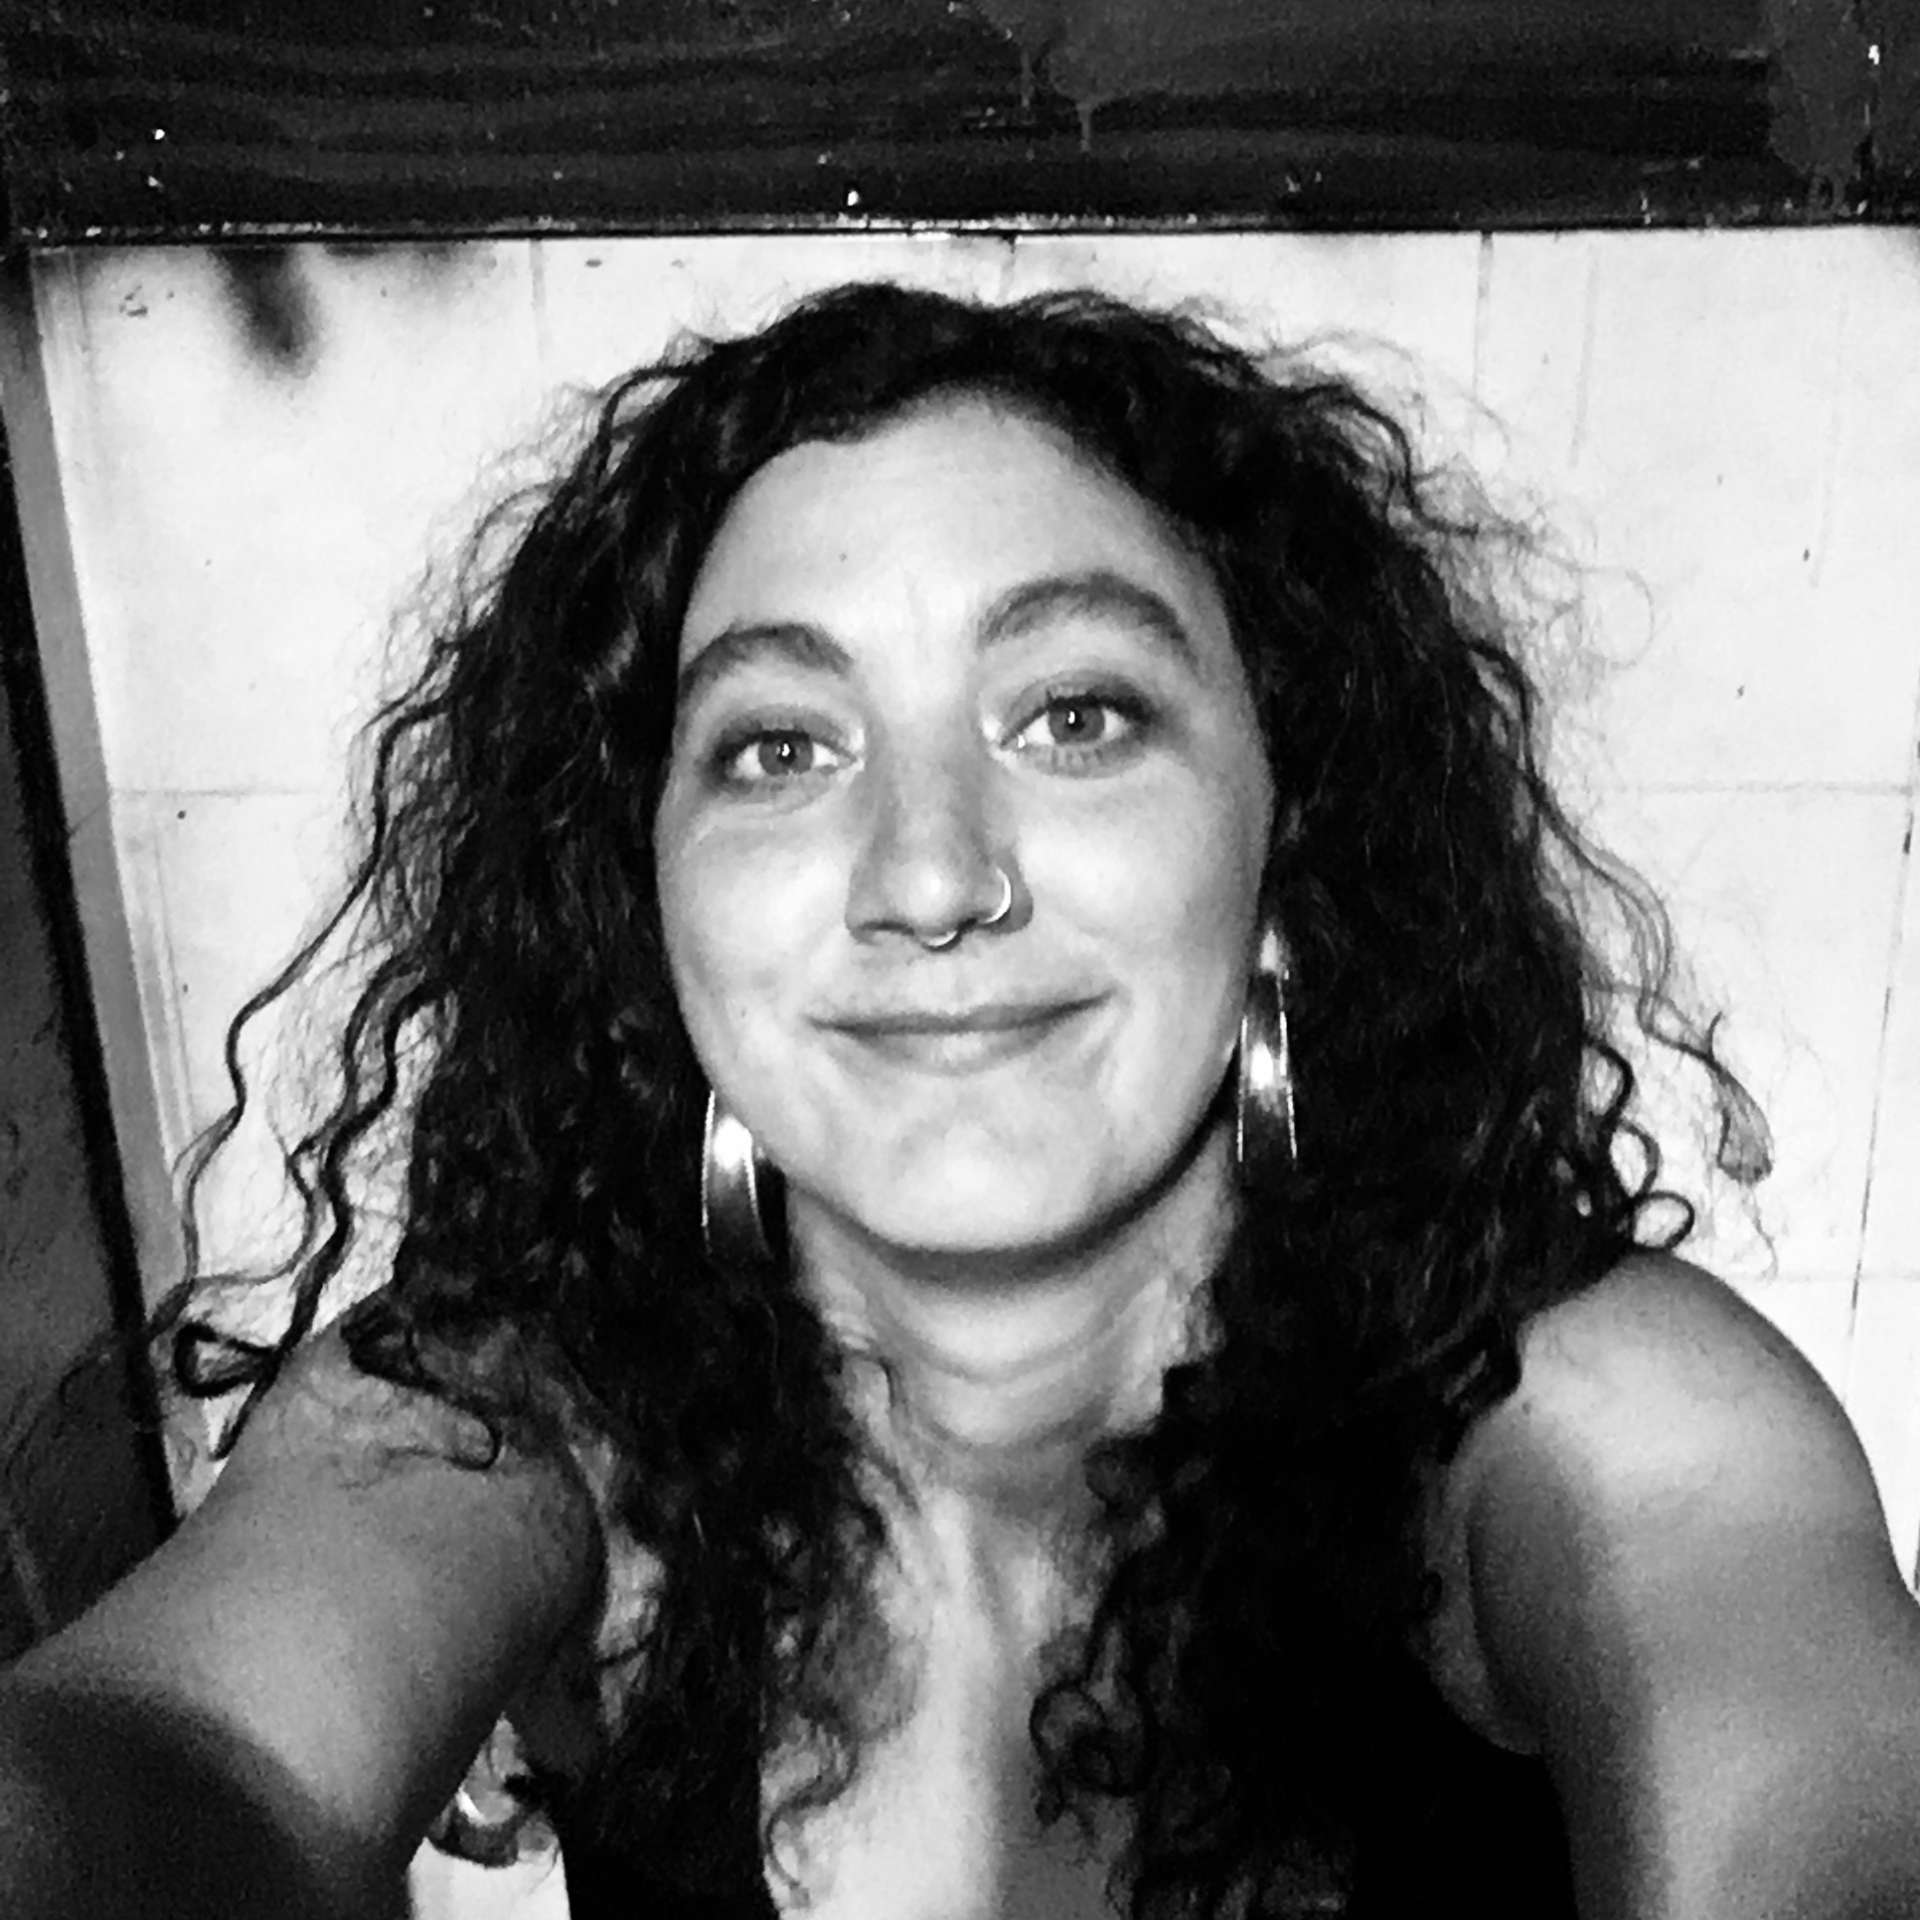 A black and white selfie of the writer, Mykaela Saunders. Mykaela is smiling at the camera and has long curly hair that falls over her shoulders.